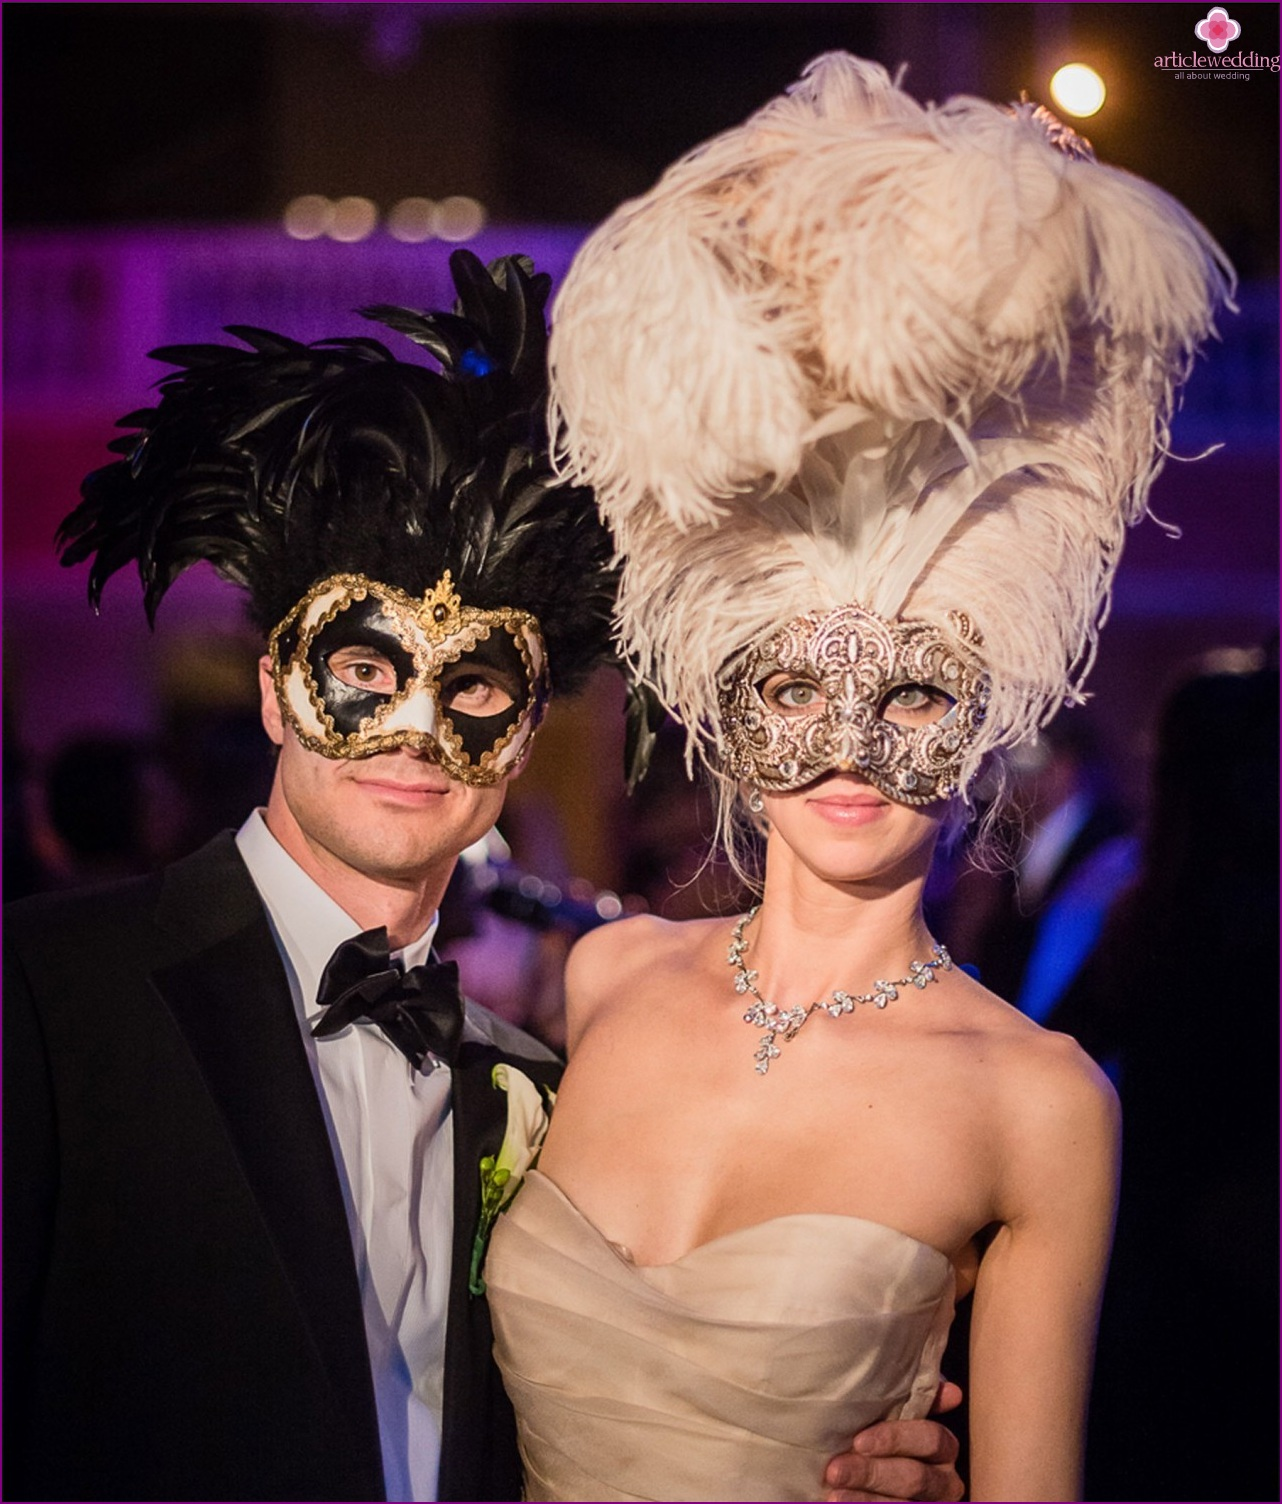 Costumes for the wedding in the style of masquerade